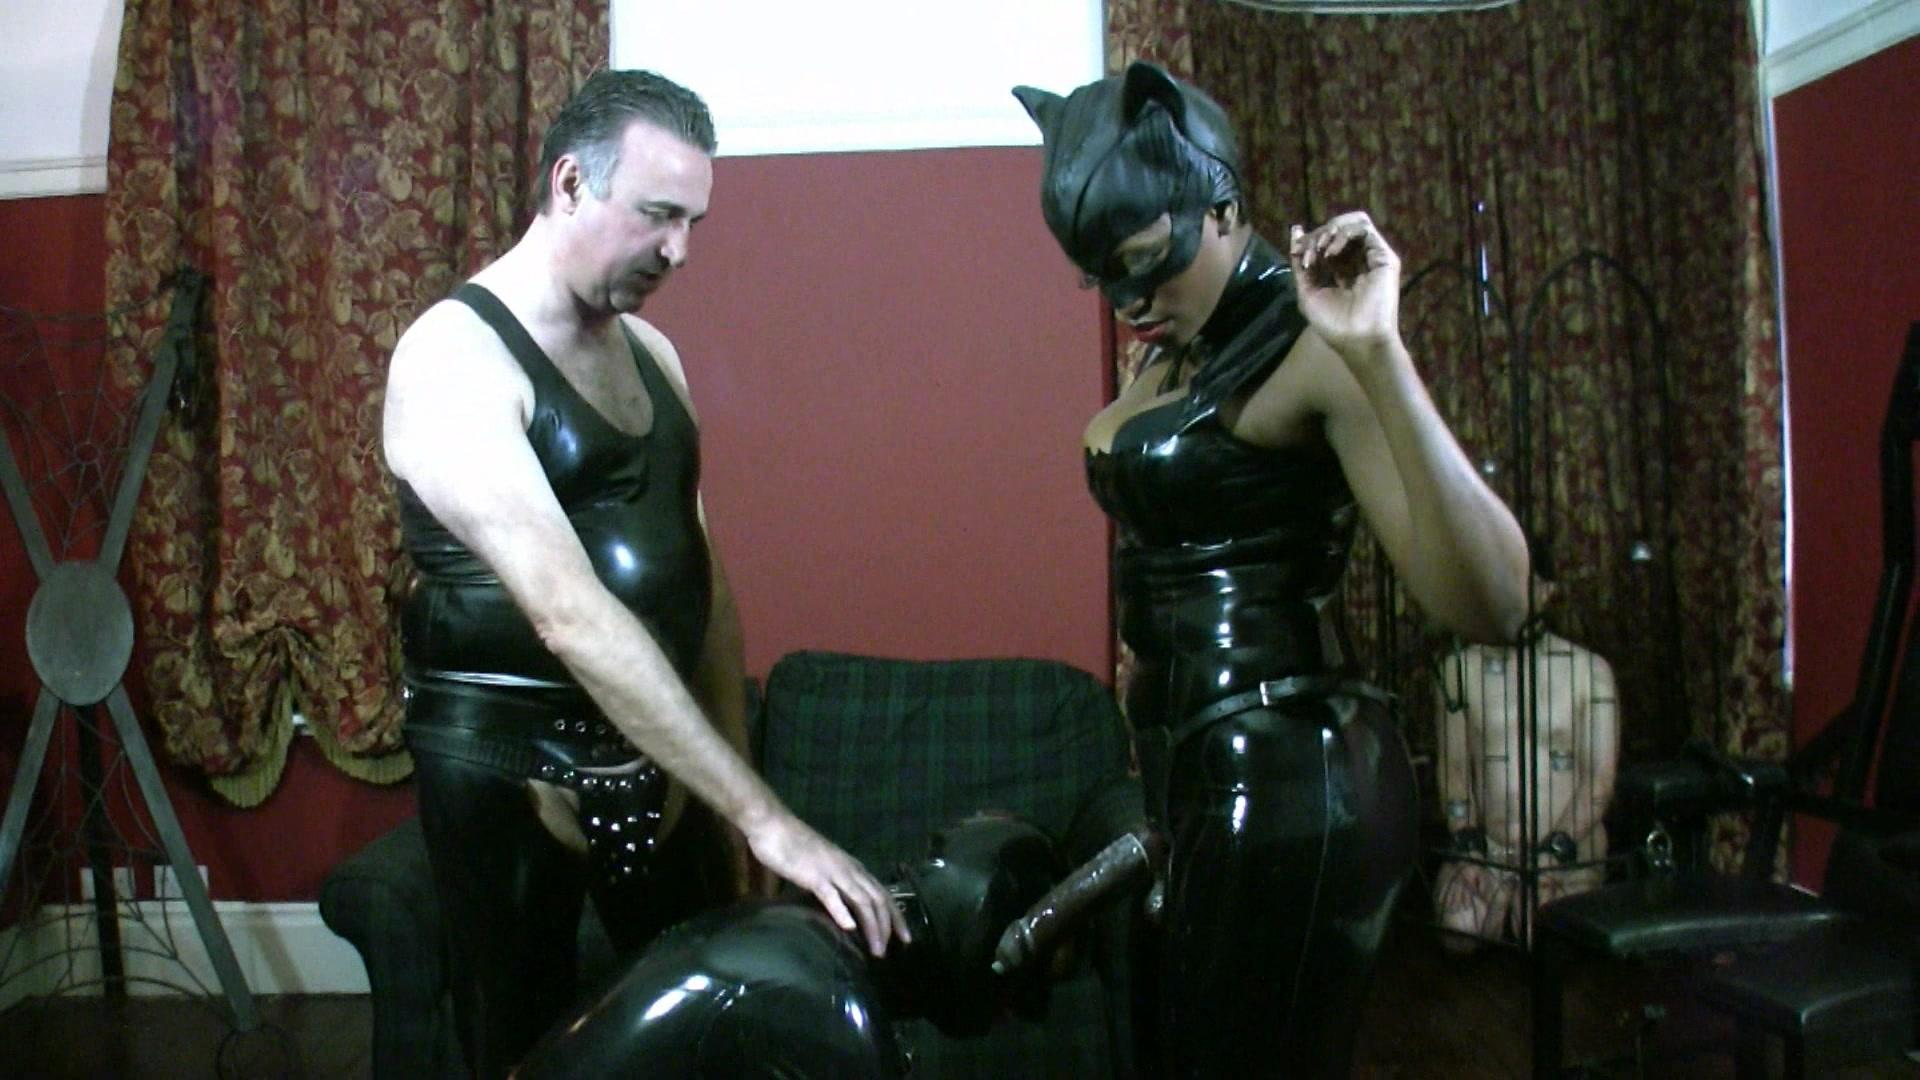 With Female domination catwoman found site